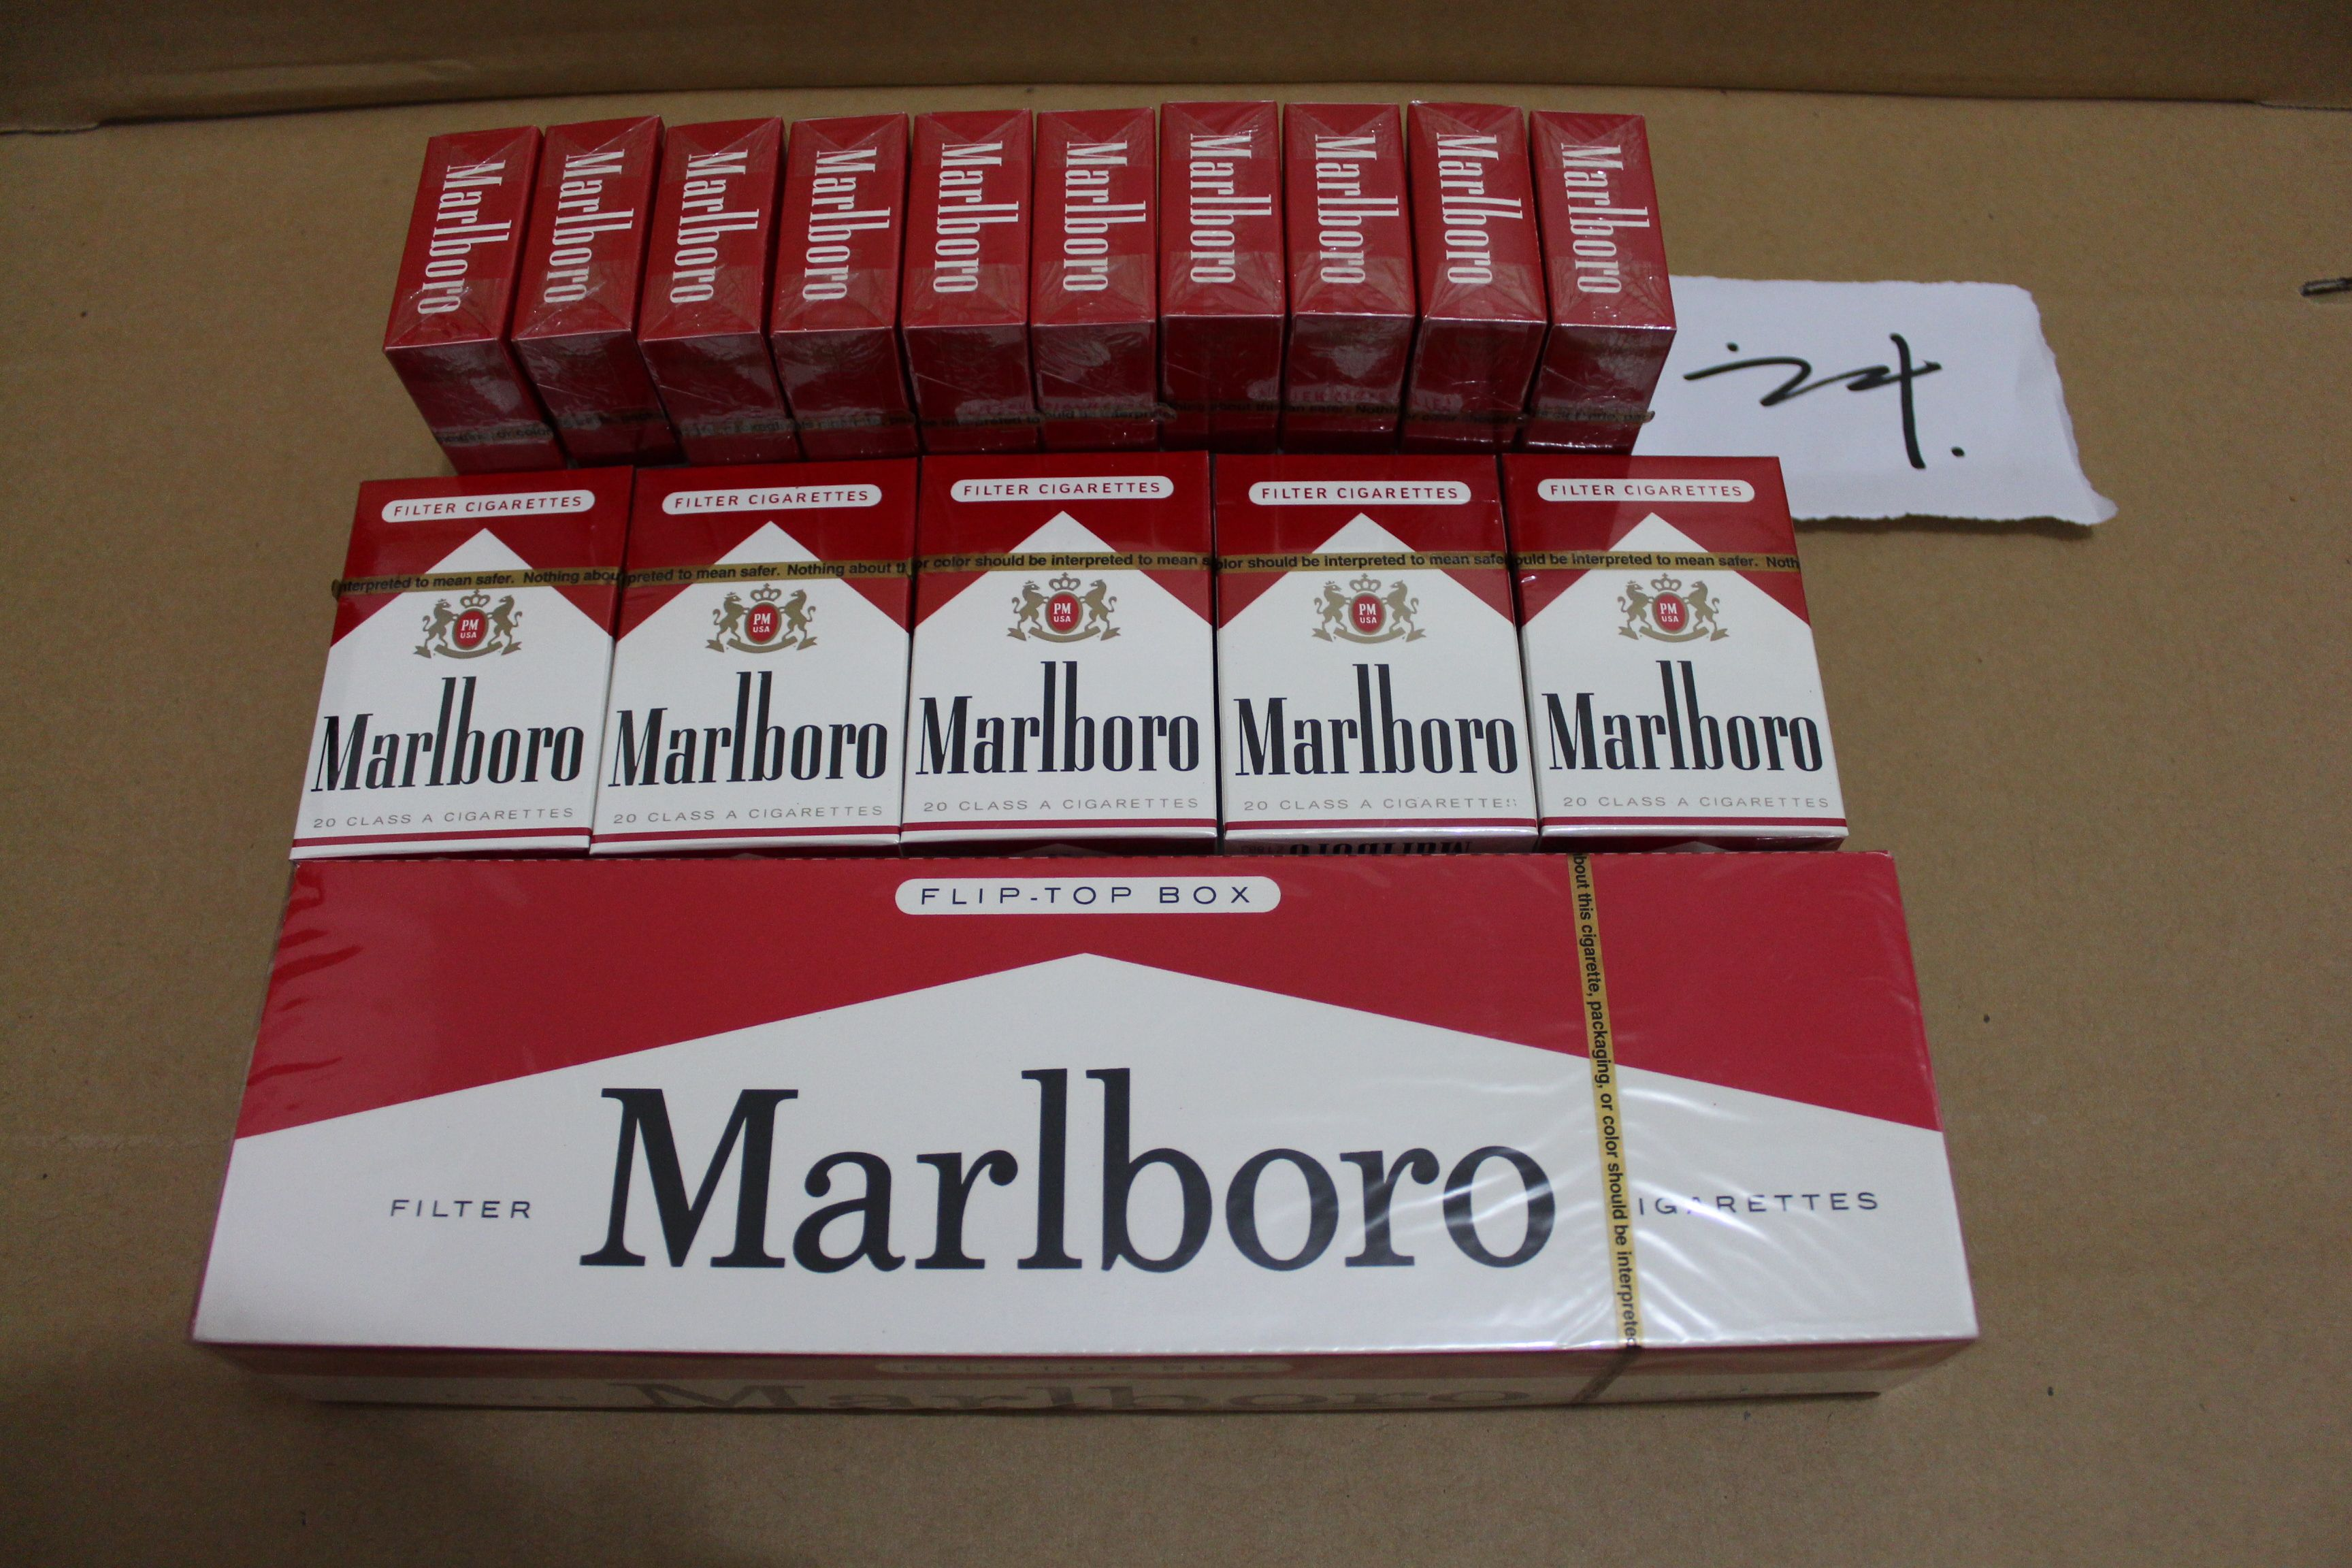 Cheap wholesale usa cigarettes good cigarettes to buy in canada